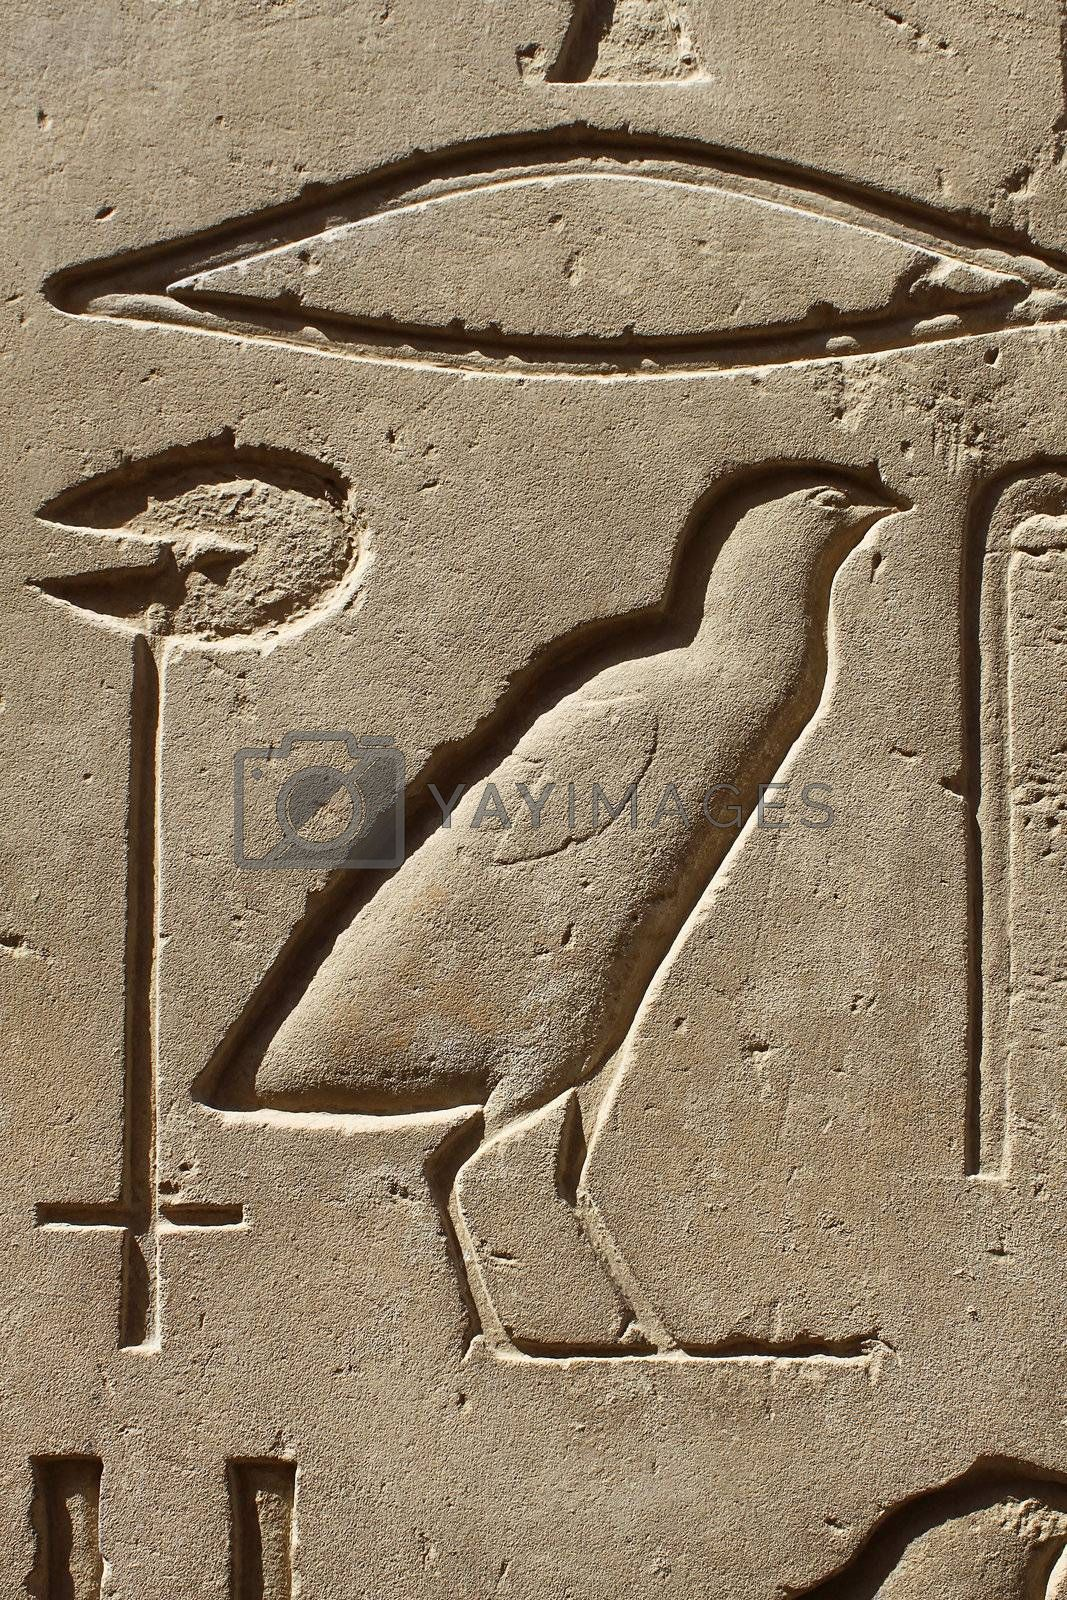 Ancient egypt images and hieroglyphics carved on the stone in the Karnak Temple, Luxor